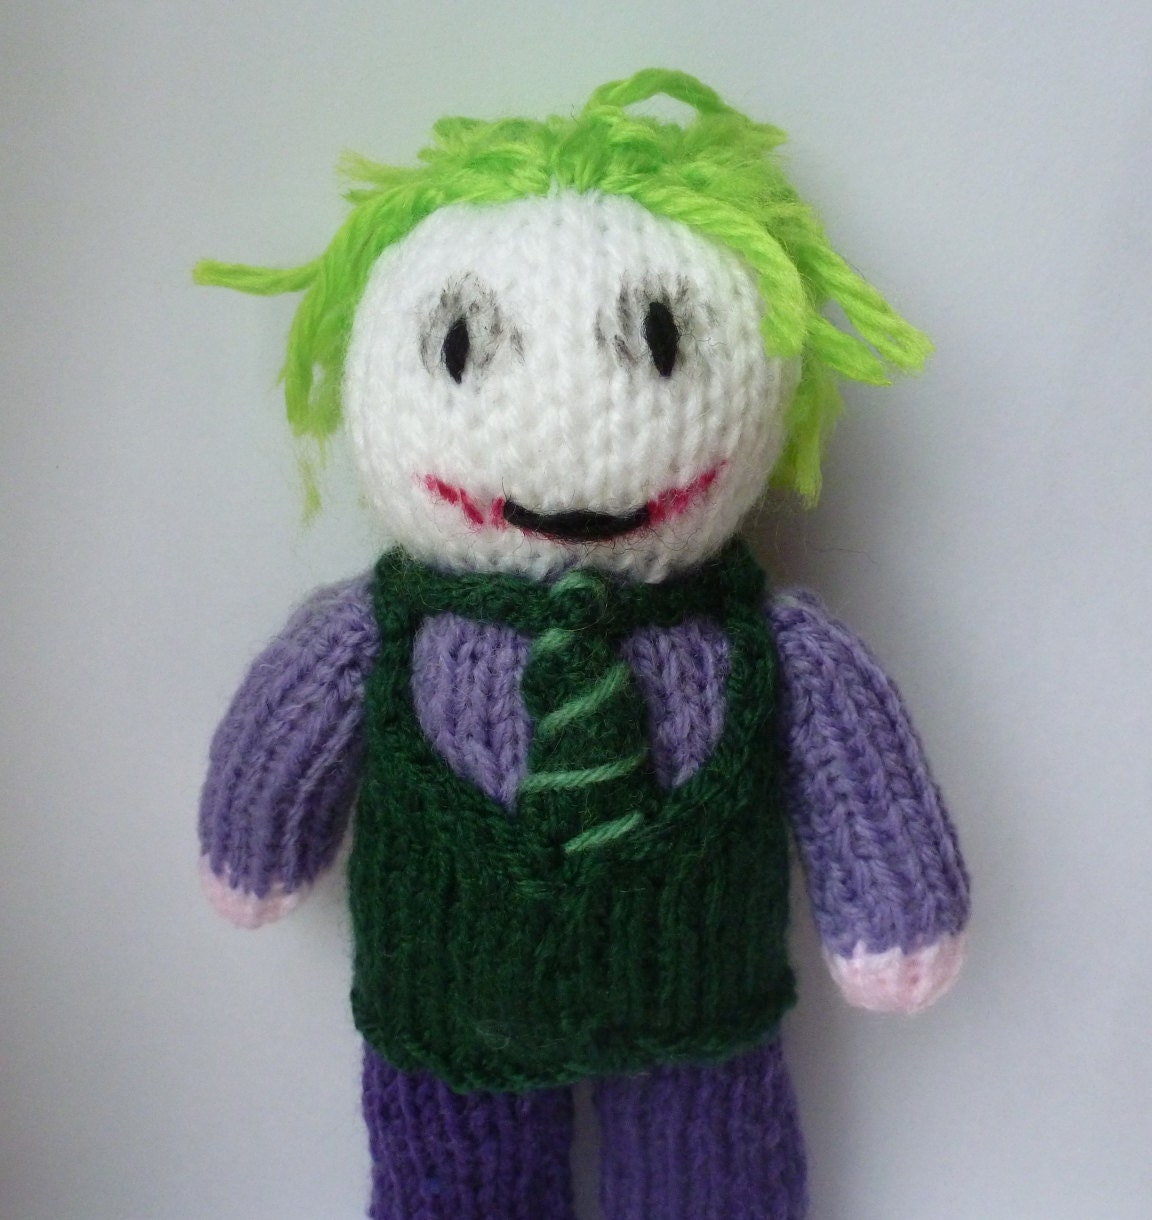 Joker (Batman) knitted doll